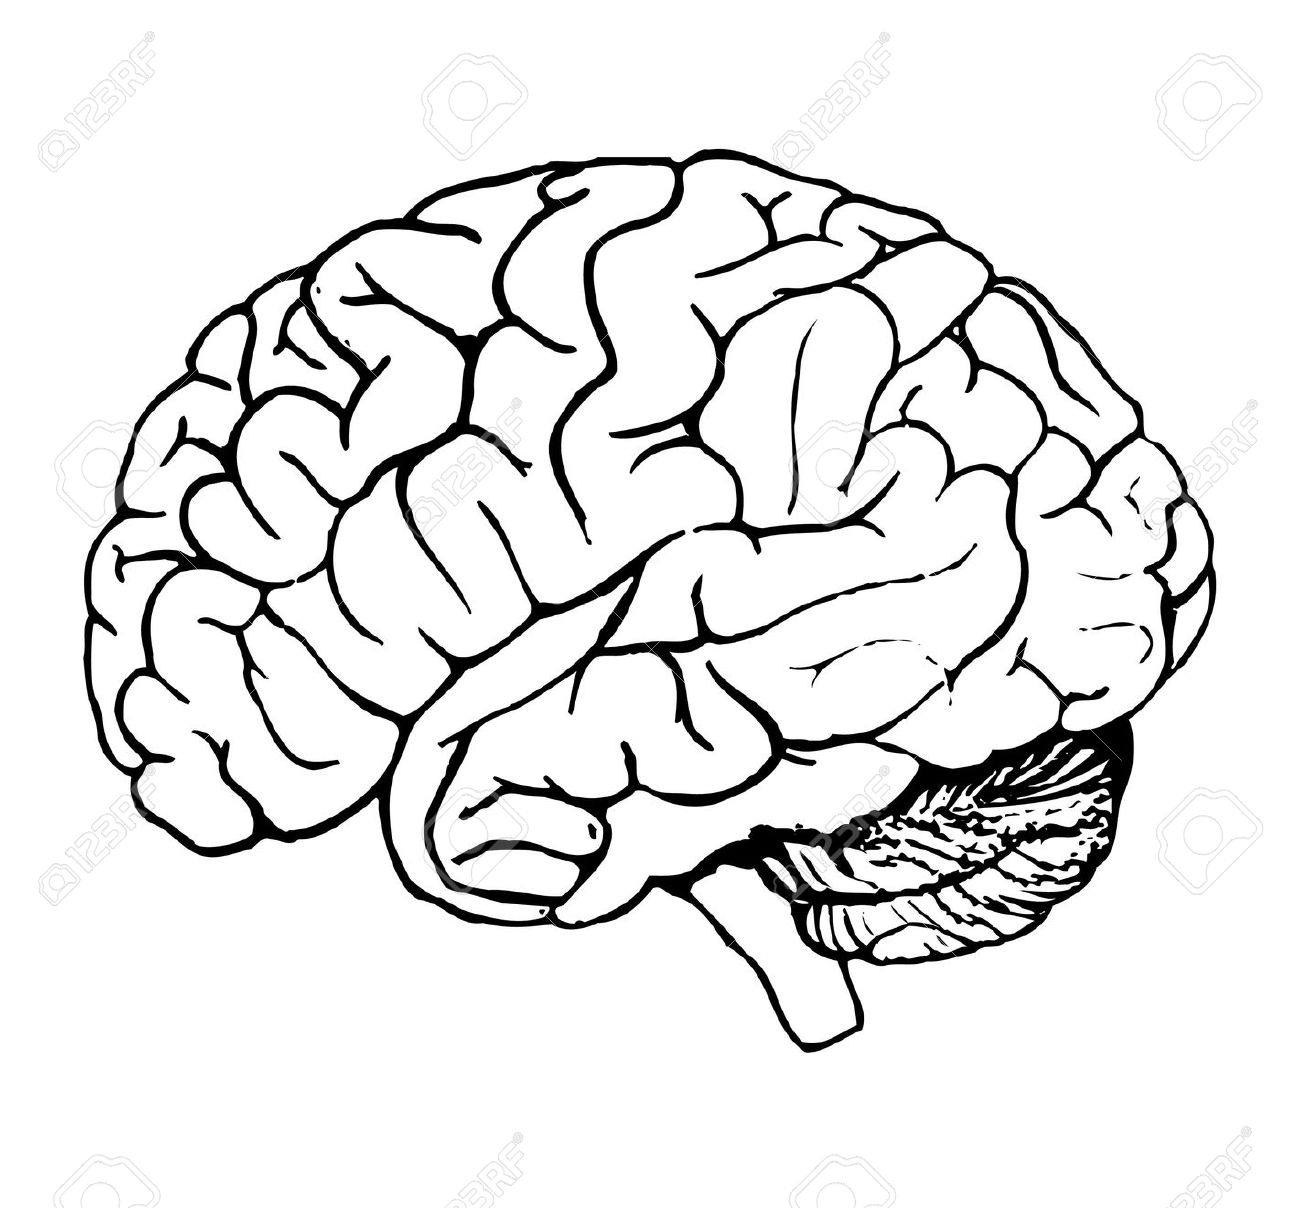 Drawn brains simple Images clipart and others clipart